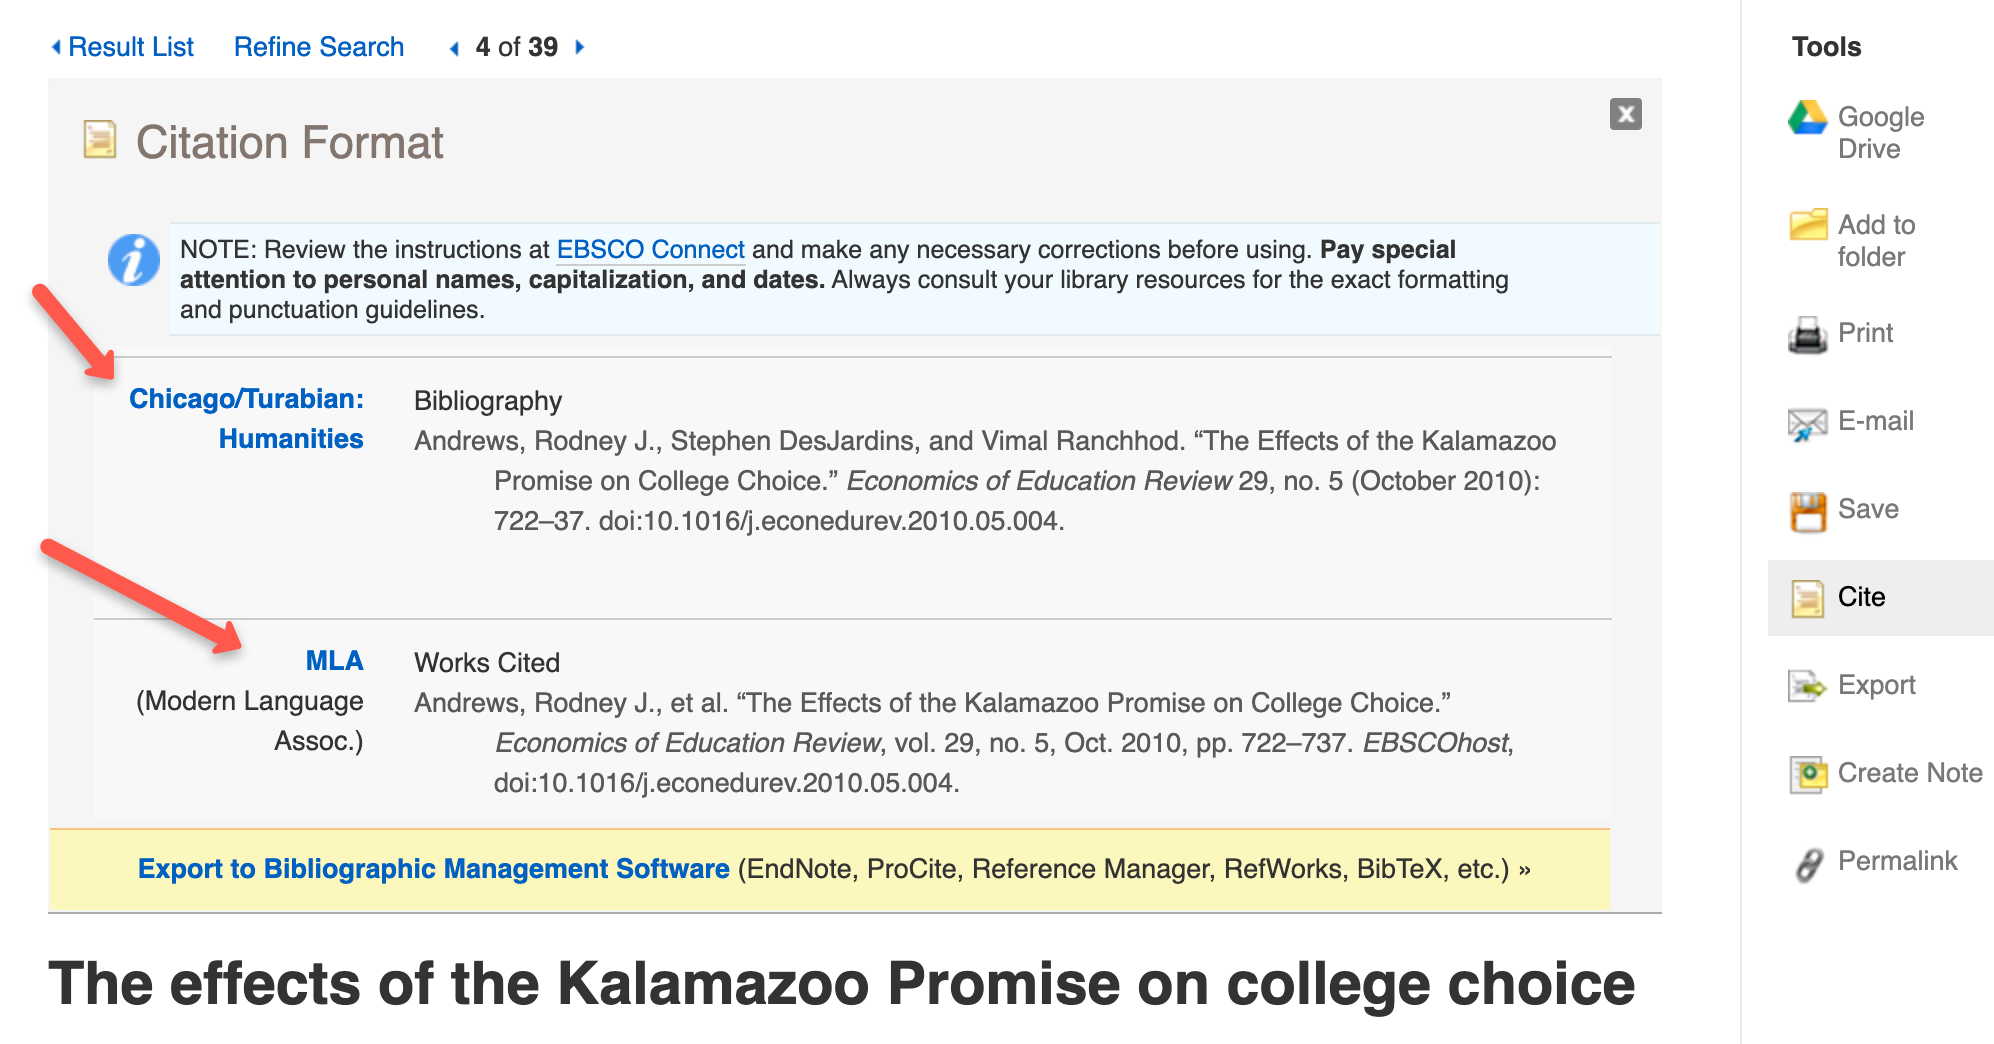 detailed screen showing citation formats